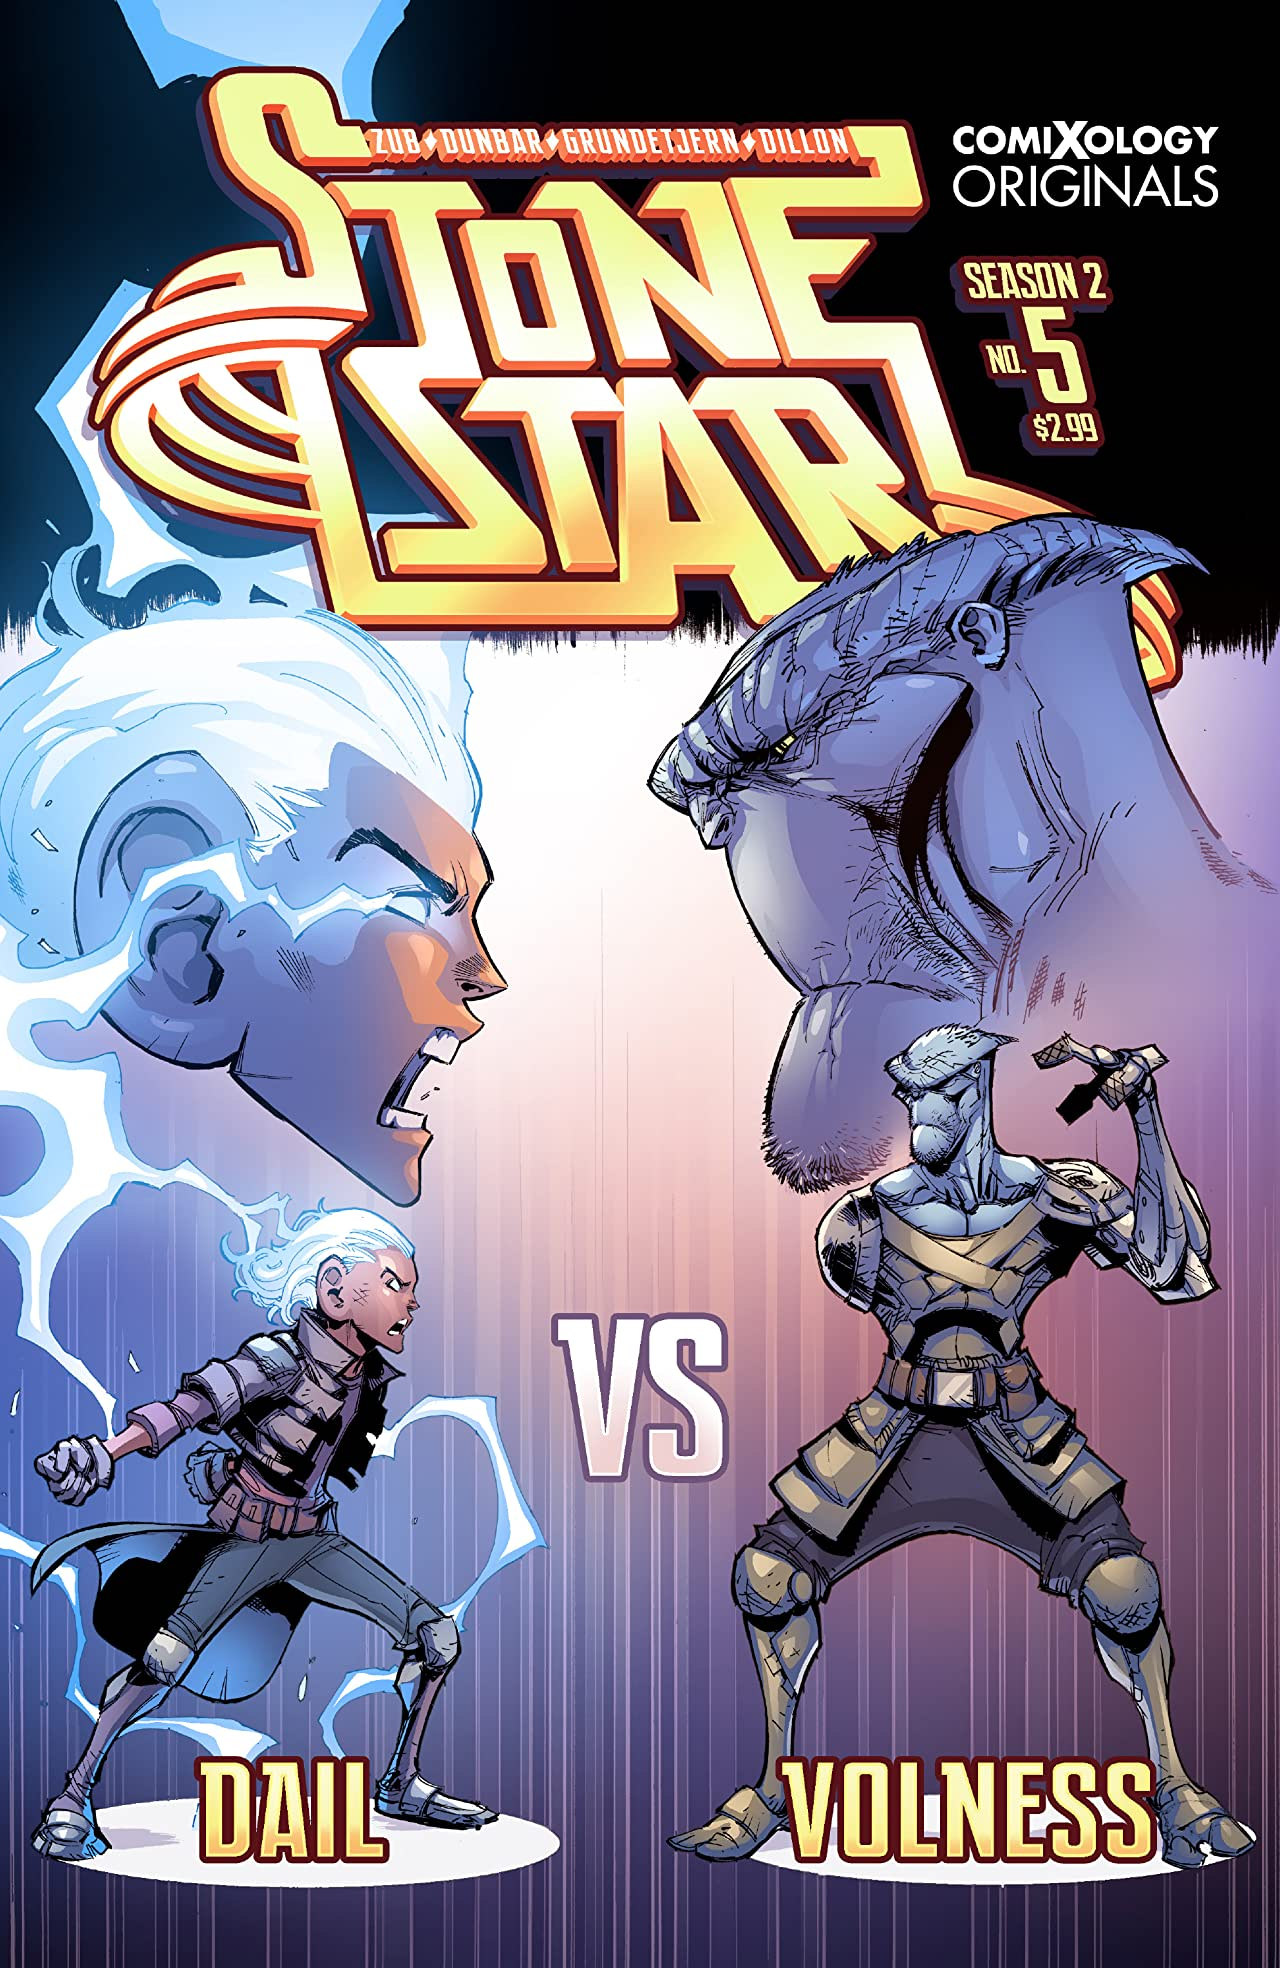 Stone Star Season Two (comiXology Originals) #5 (of 5)